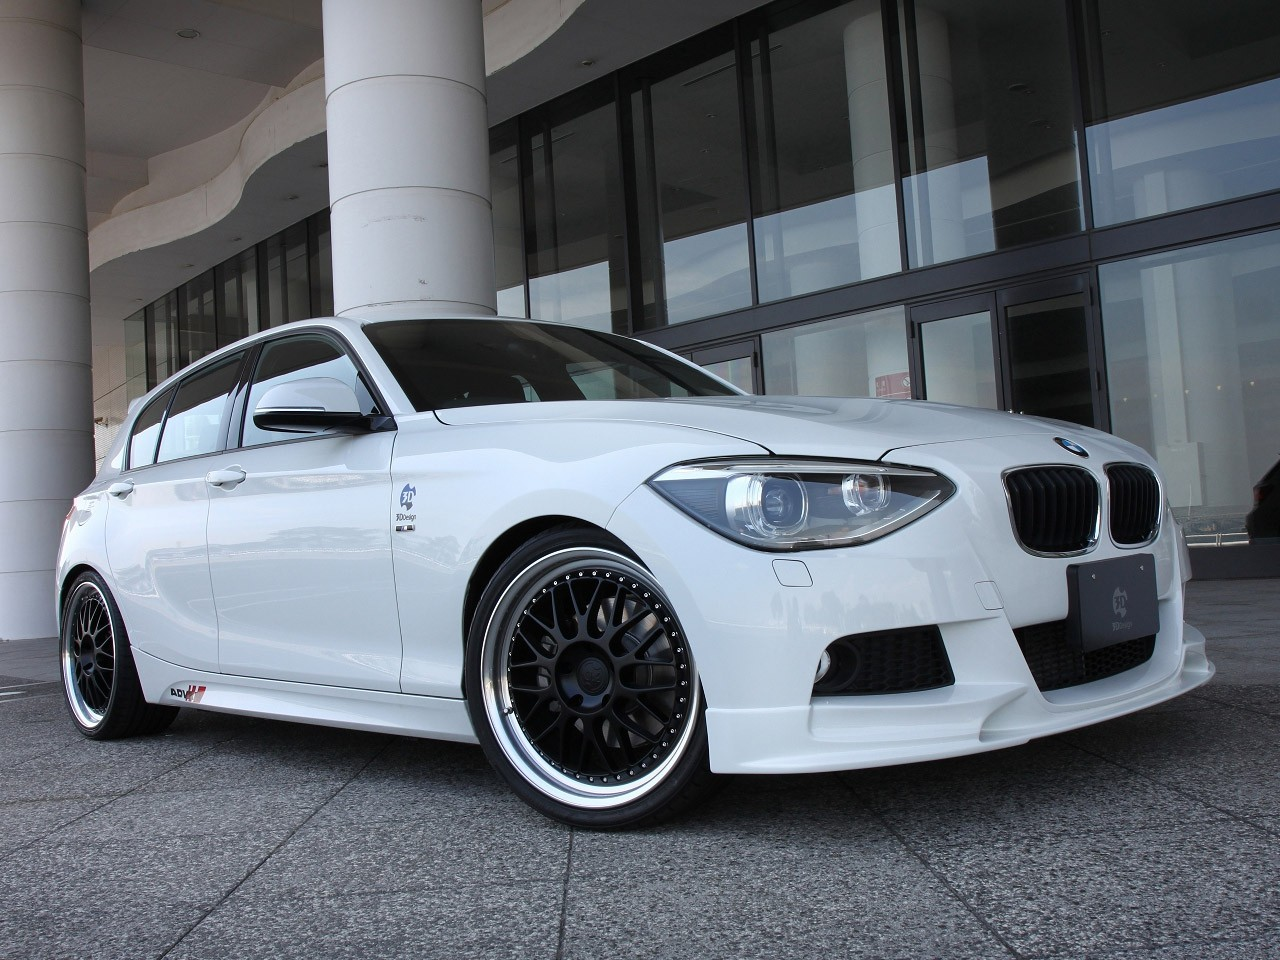 2012 3ddesign Bmw 1 Series M Sport F20